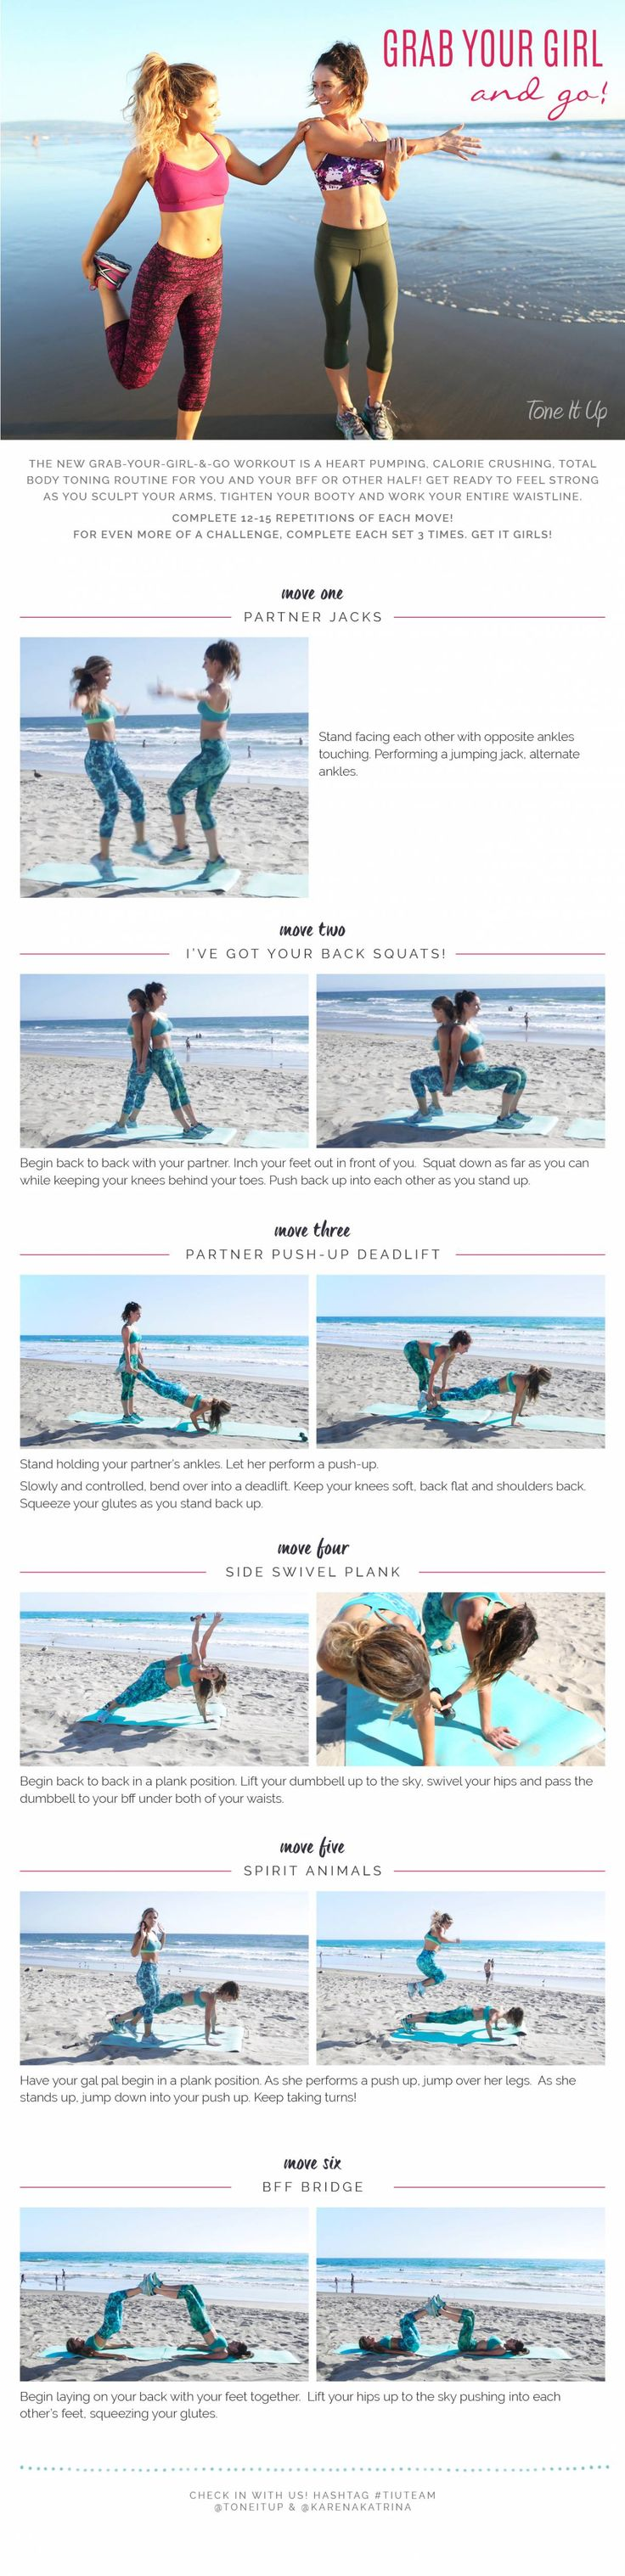 Grab your bestie and go Tone it Up! This partner workout from our friends Karena and Katrina will get you fit for Fall in no time.